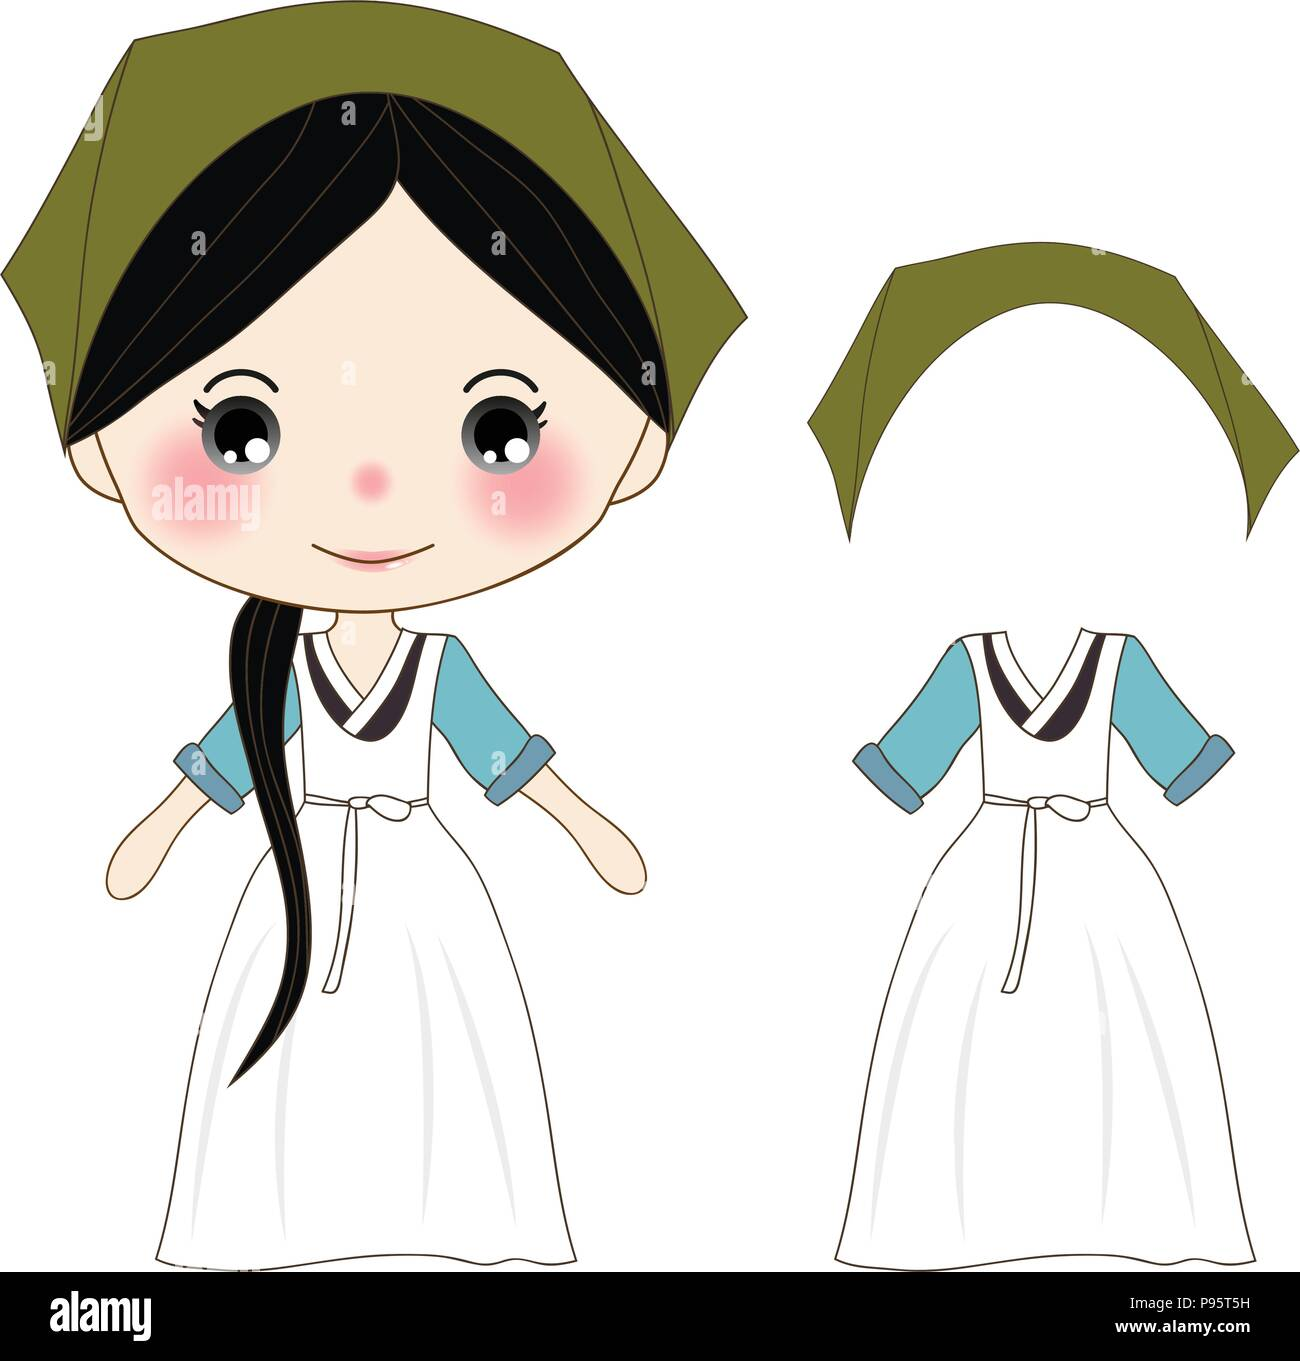 Cute Girl In Green Hanbok Korean Traditional Costume Vector Illustration Isolated On White